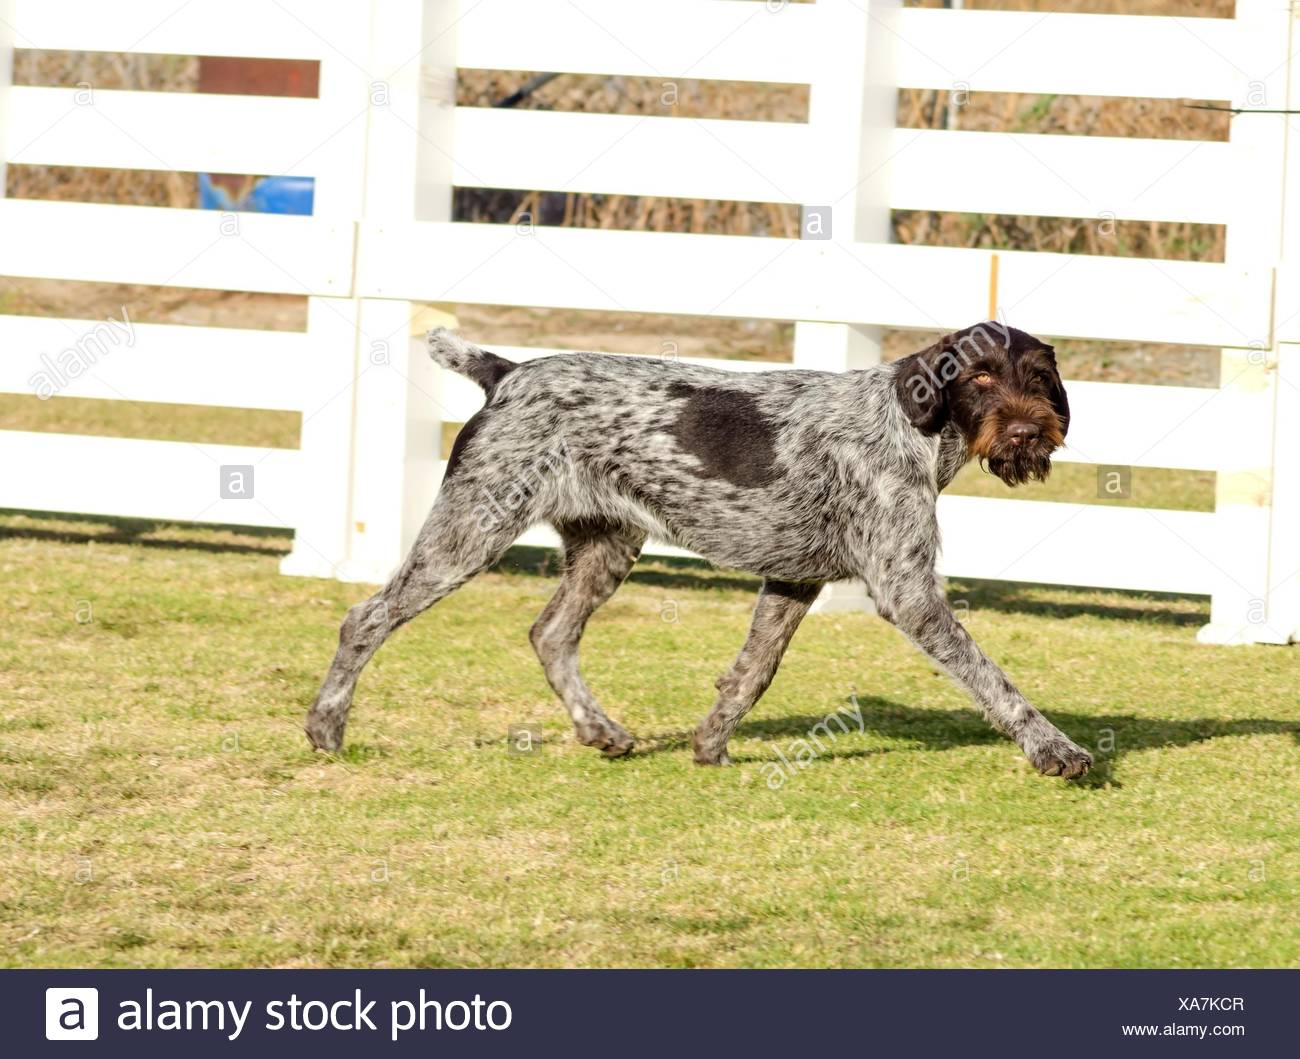 Wiry Coat Stock Photos & Wiry Coat Stock Images - Alamy